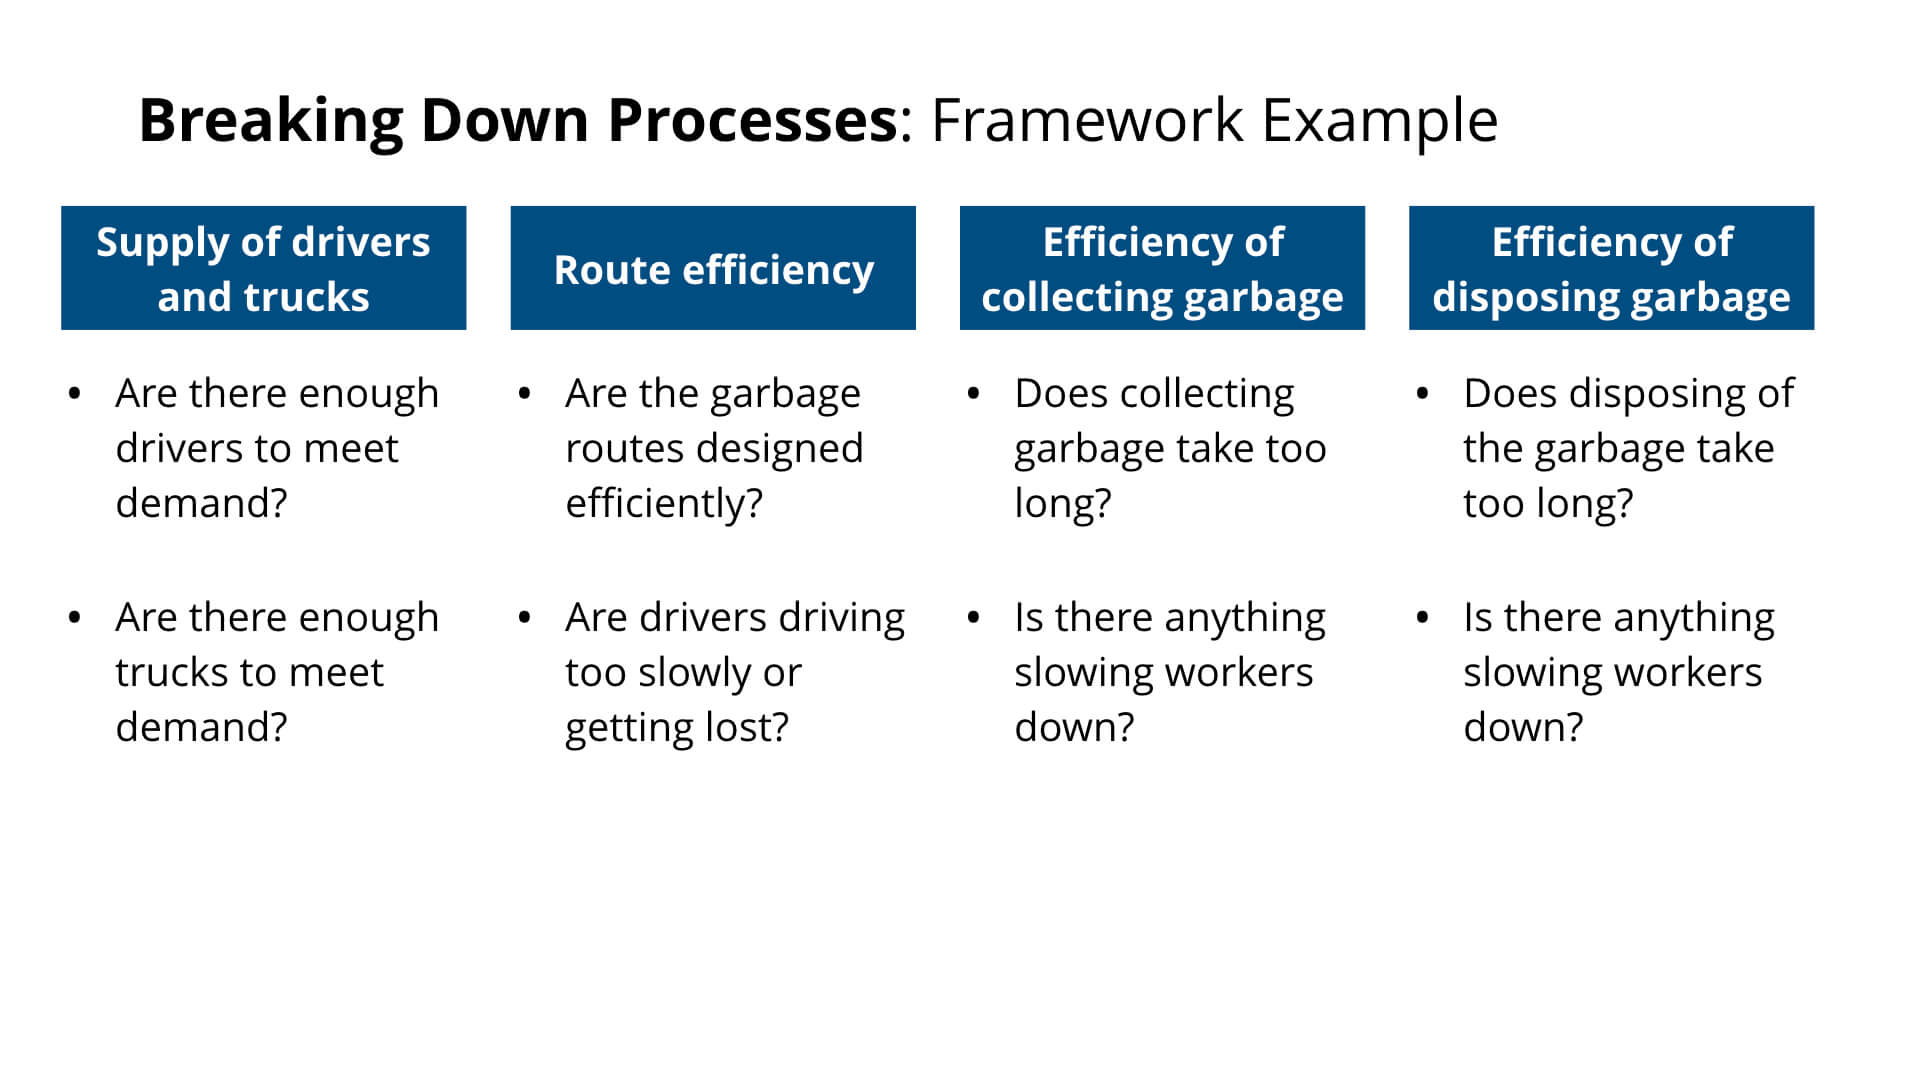 Breaking Down Processes Framework Example